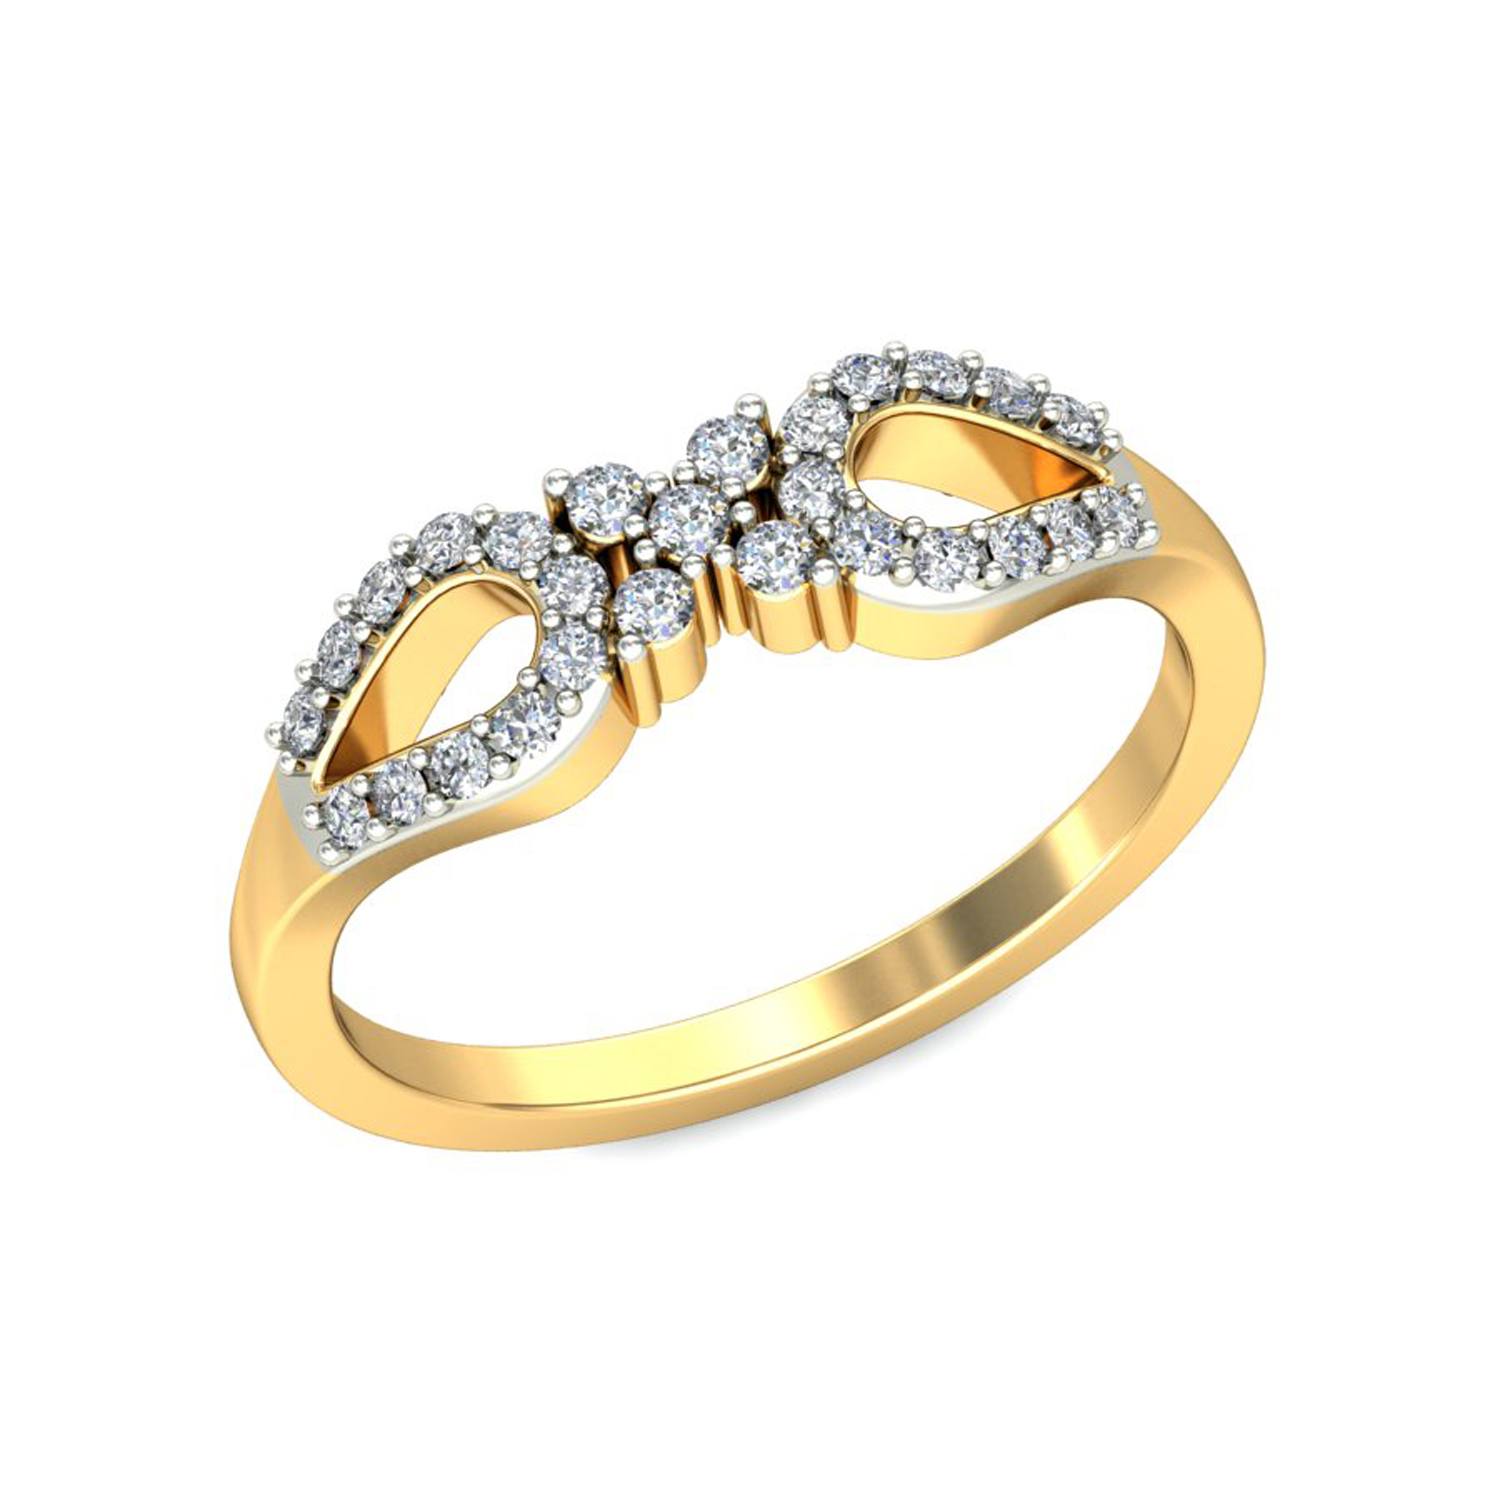 Ring For Sale 0 2 Carat Certified Diamond Yellow White Gold